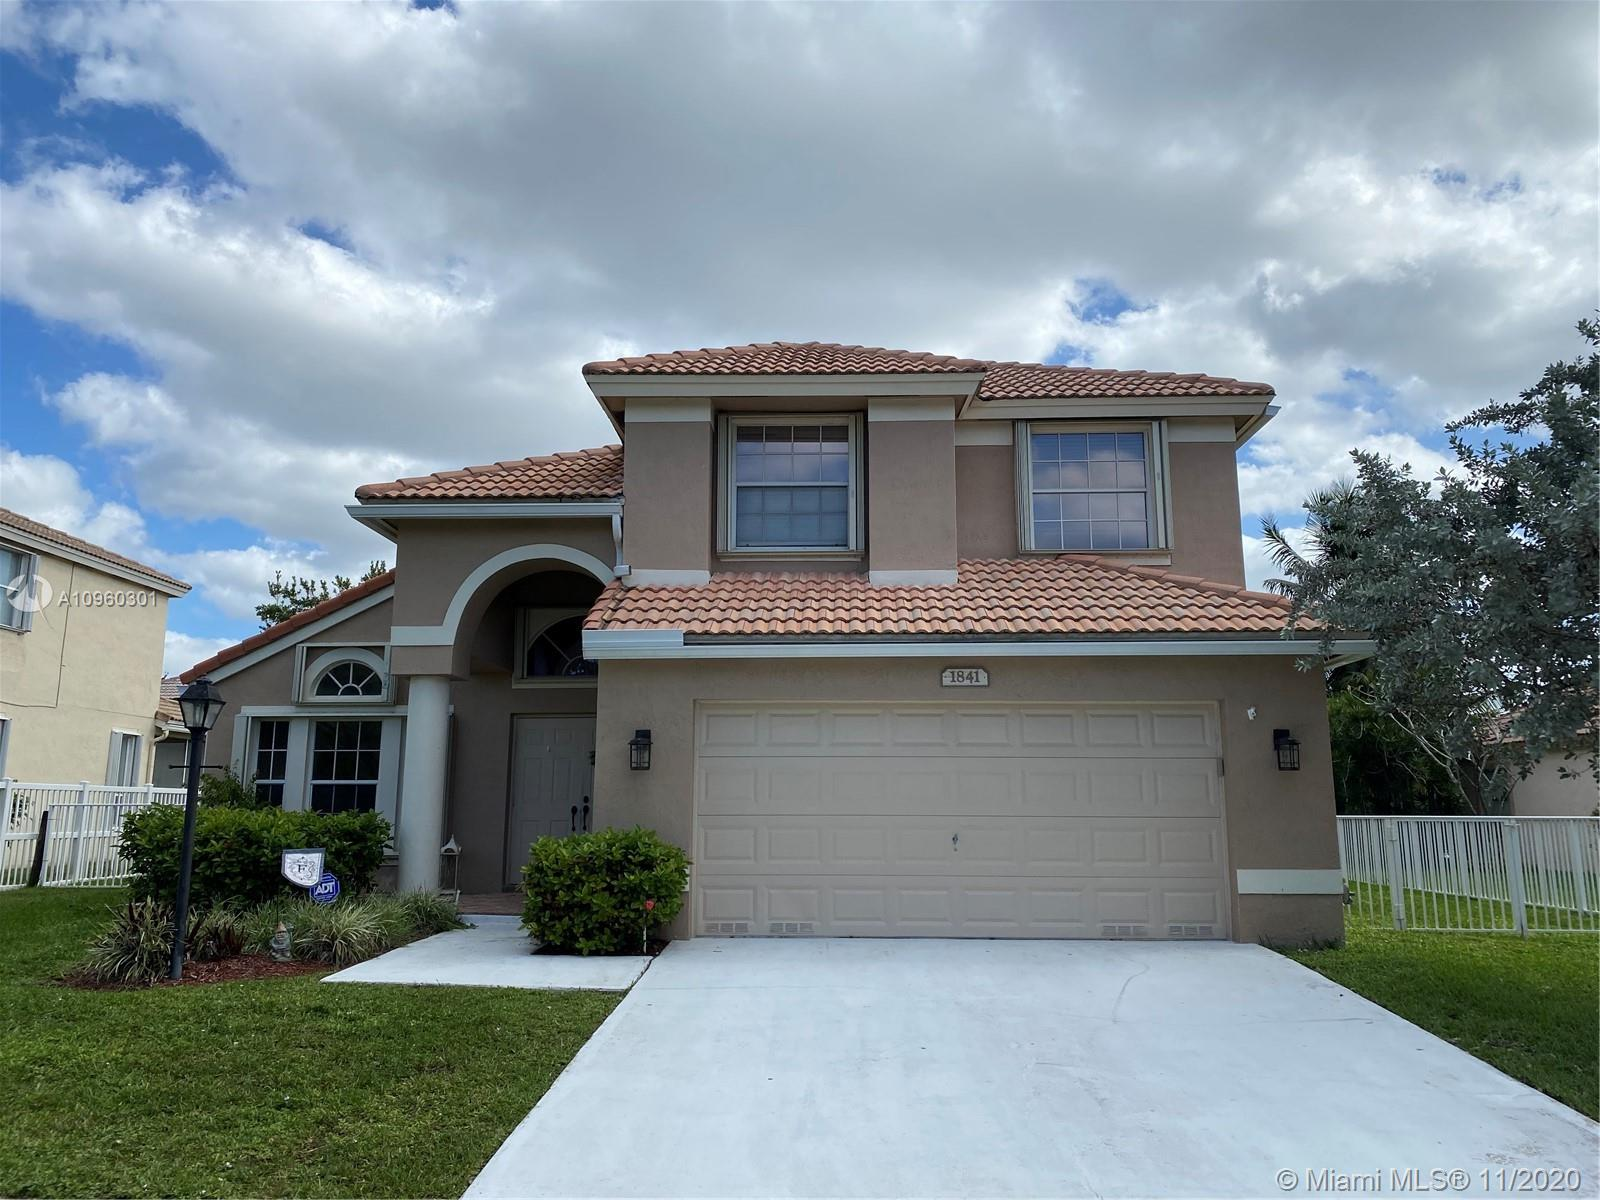 Amazing 4 bedroom, 2 1/2 bath, two story lakeview home in the heart of the Pembroke Fall community. Oversized LOT.  Very spacious Master bedroom located on main floor, brand new kitchen, Accordion shutters on all windows, and screened in lakeview patio.